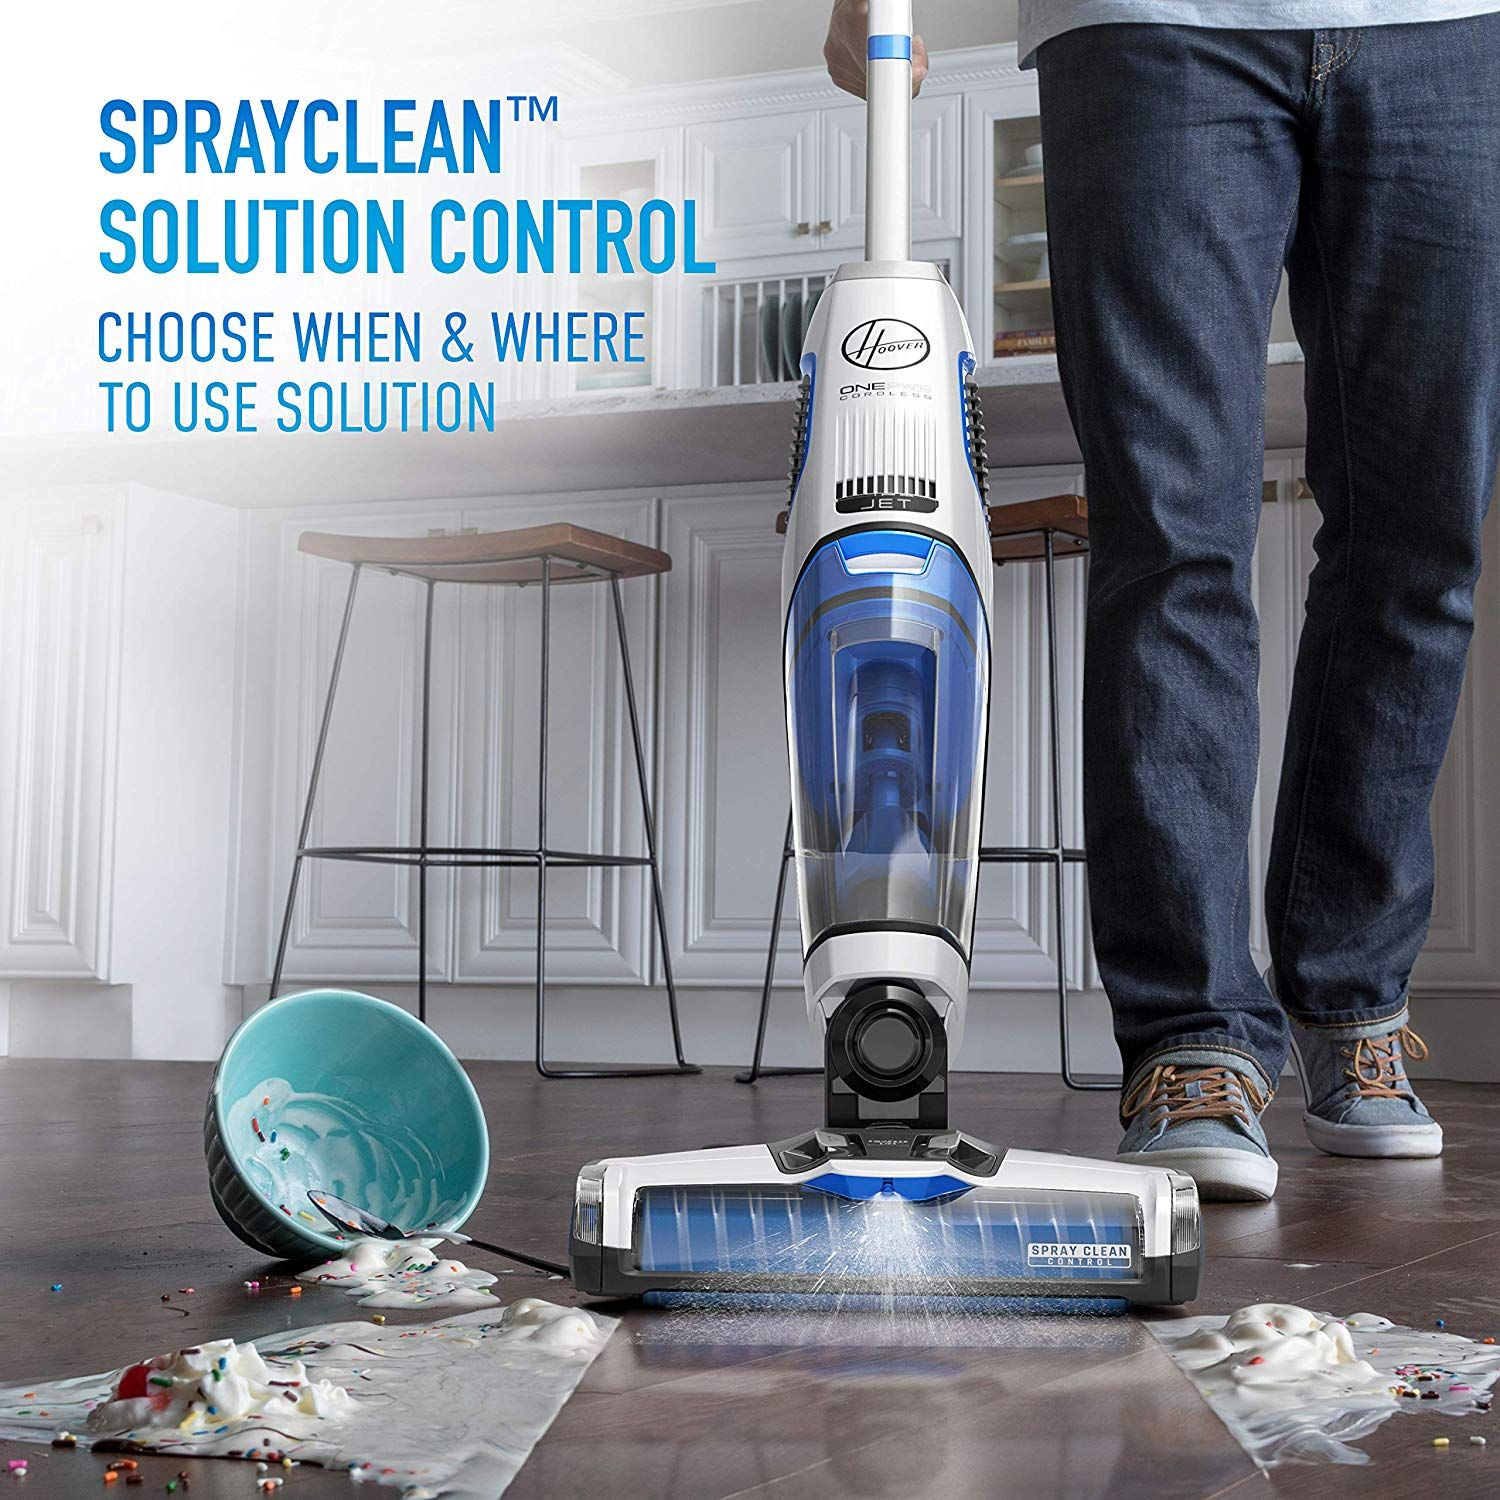 Vacuums While Washing For One Step Cleaning On Multiple Sealed Surfaces Including Hardwoods Tile And Laminate Cordless Del In 2020 Floor Cleaner Hard Floor Cleaners